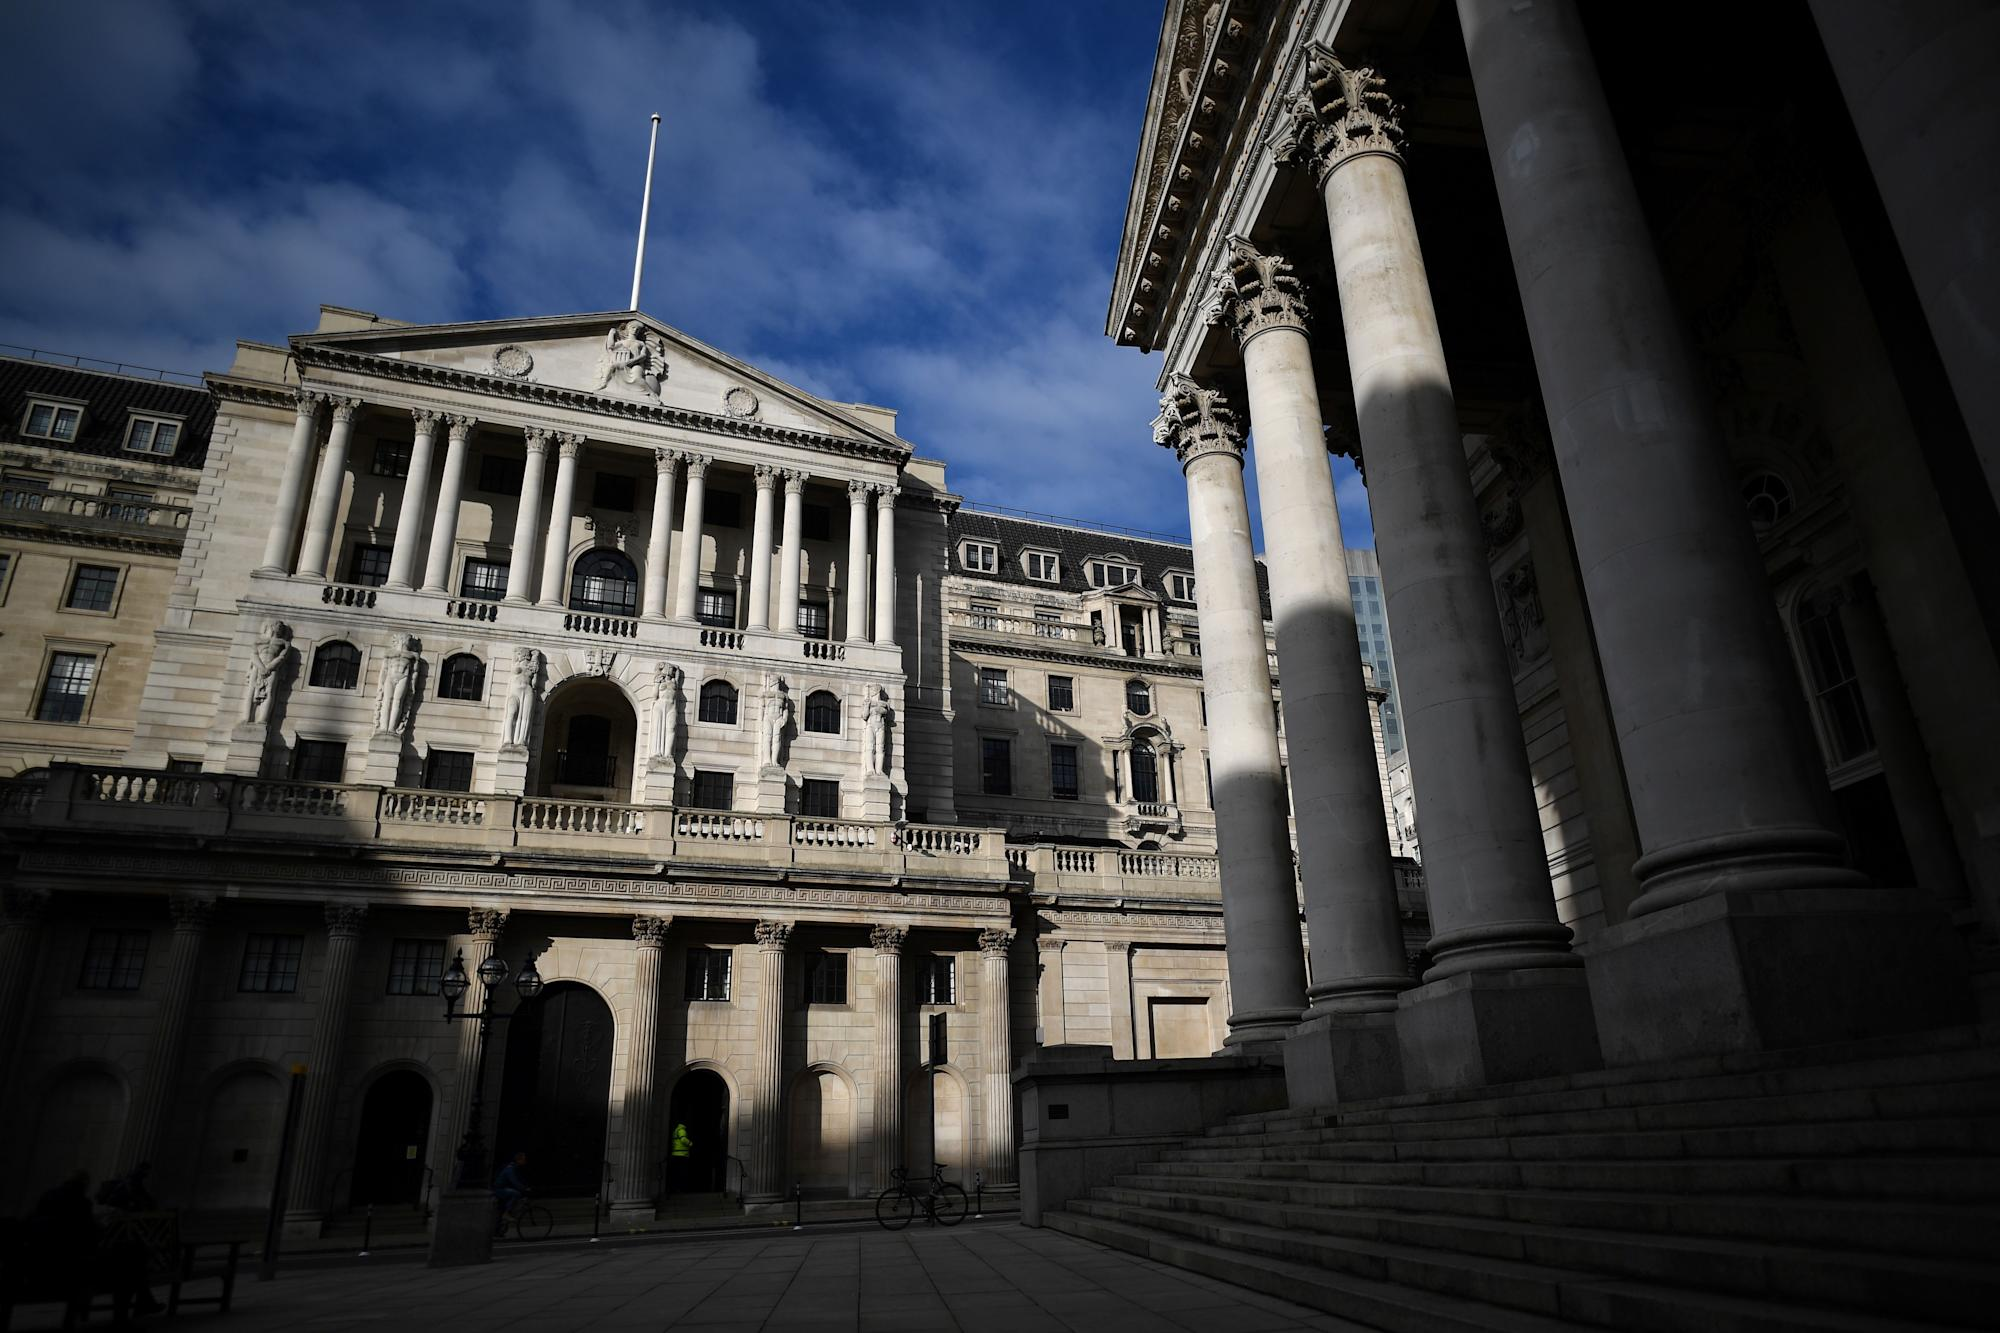 Bank of England official: We could be reaching money's 'iPhone moment'